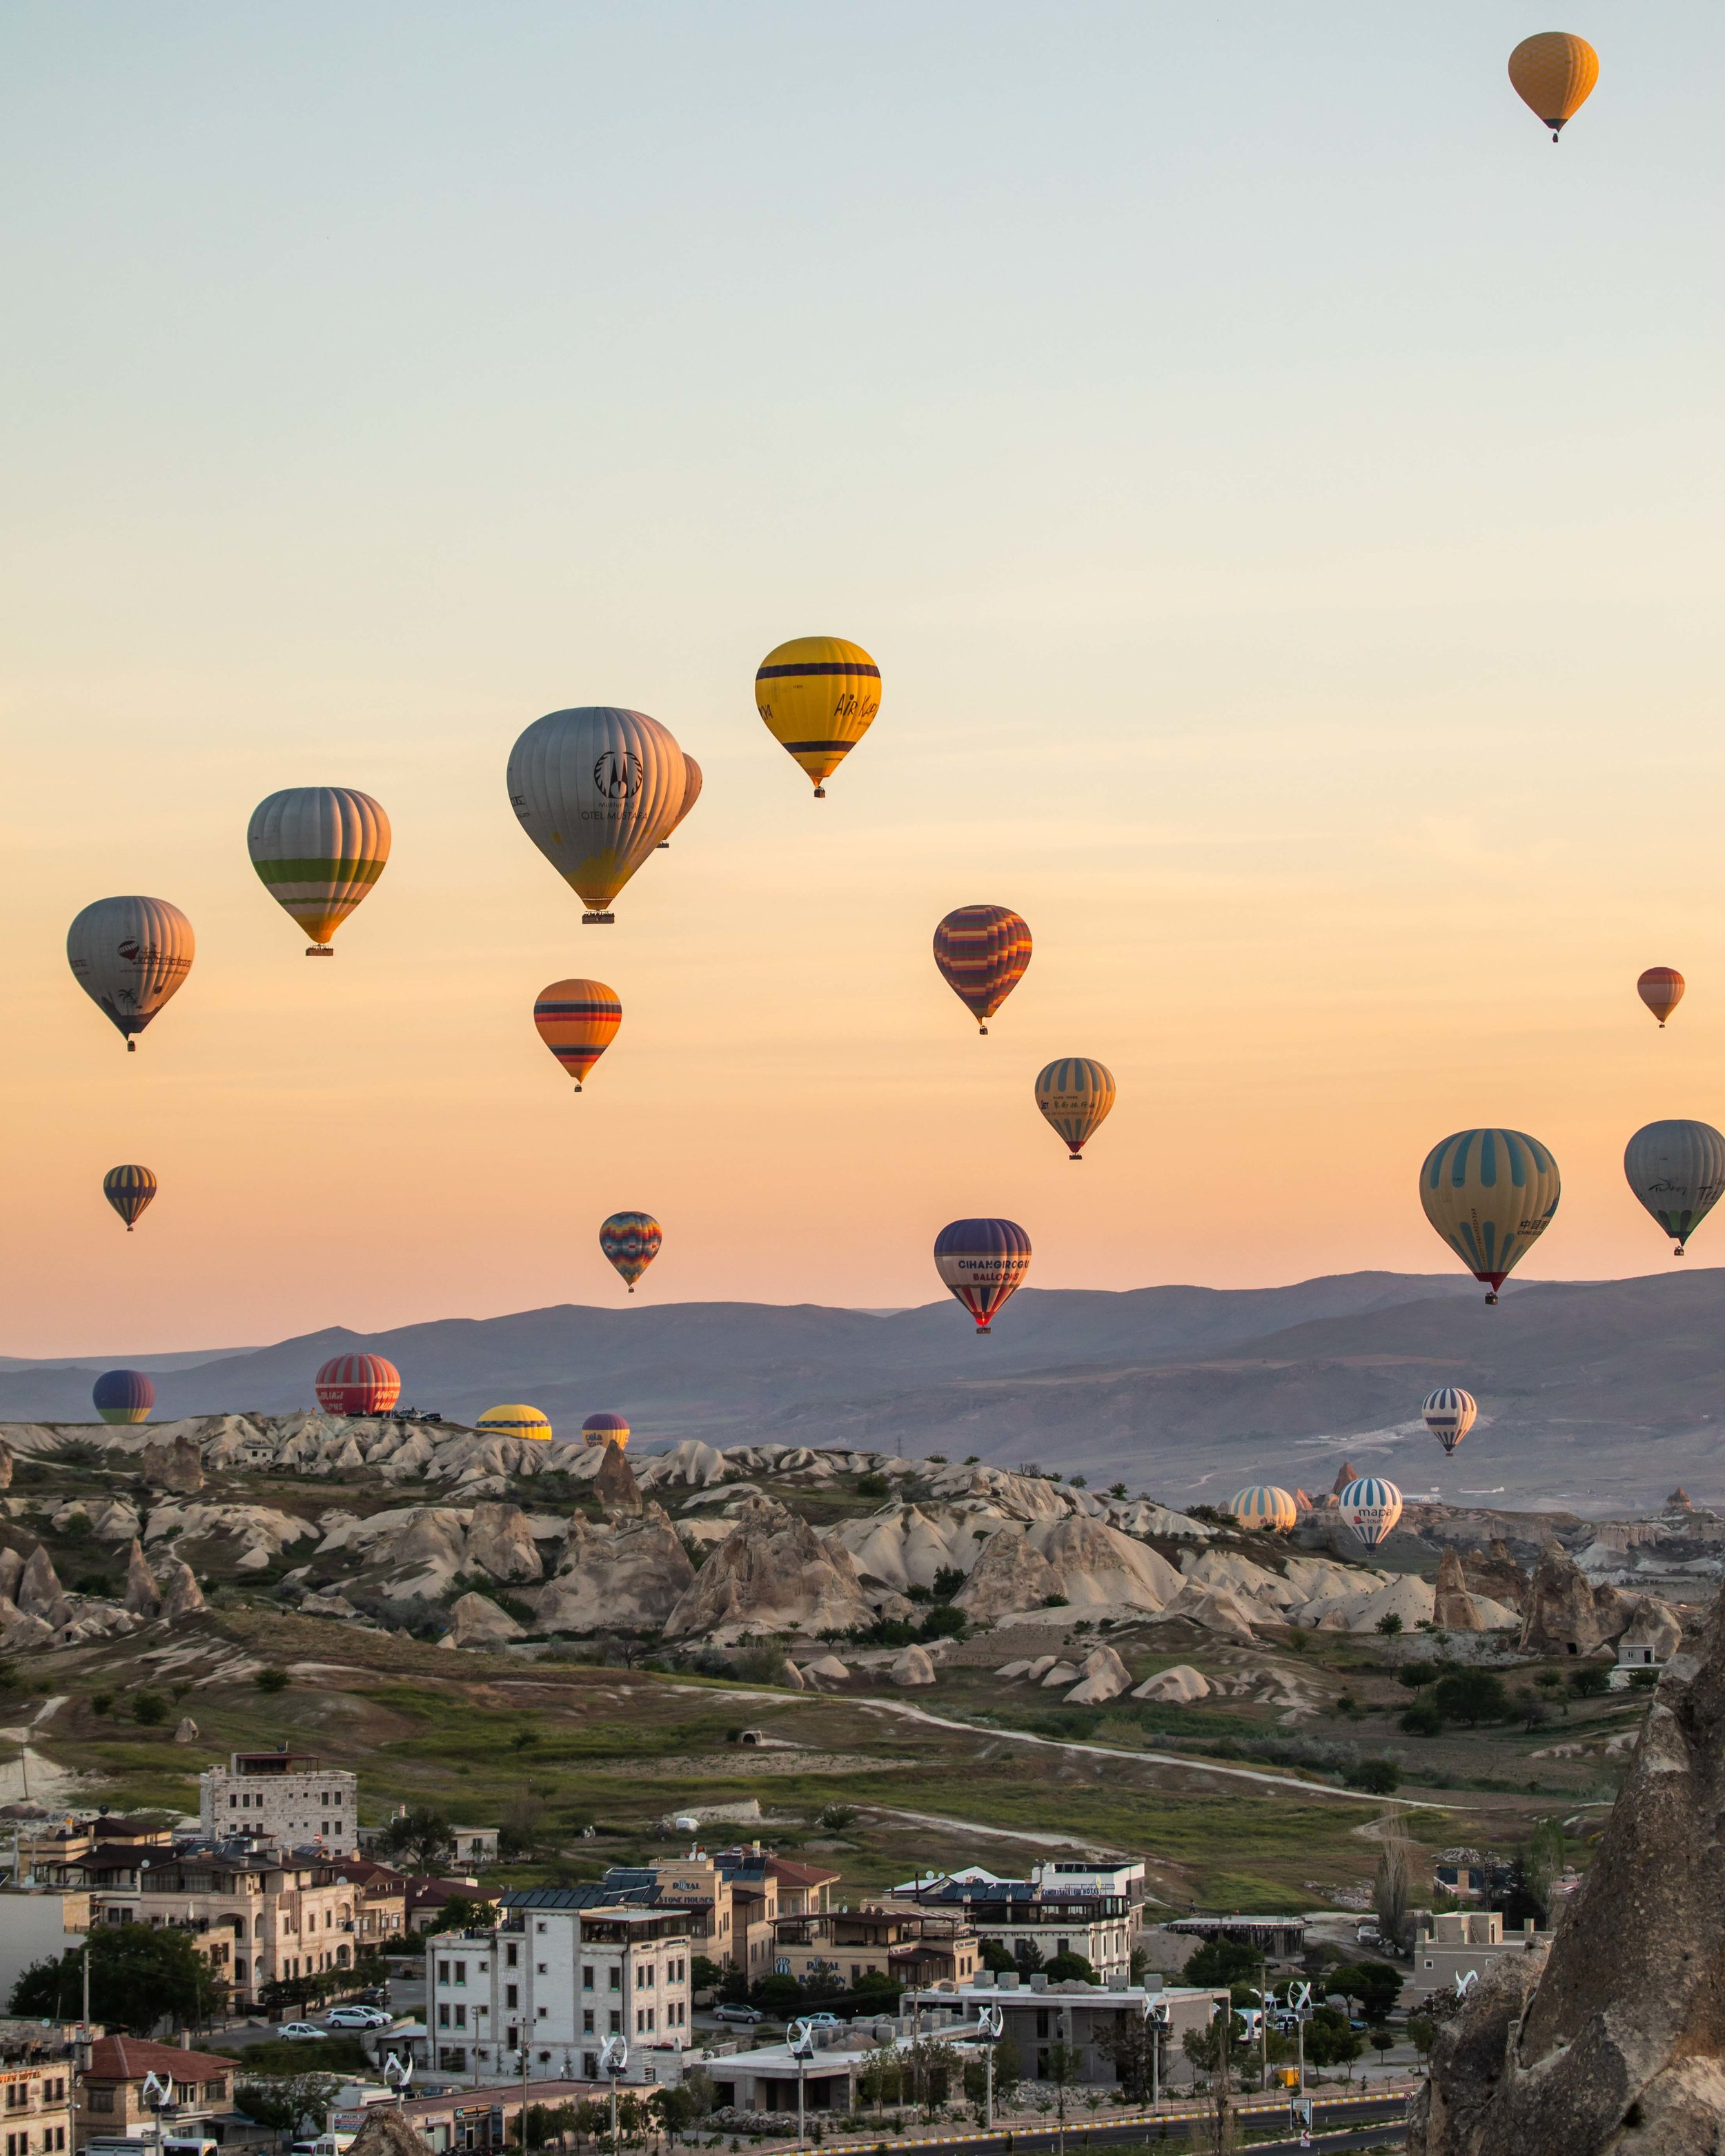 Where to stay in Cappadocia. - Goreme